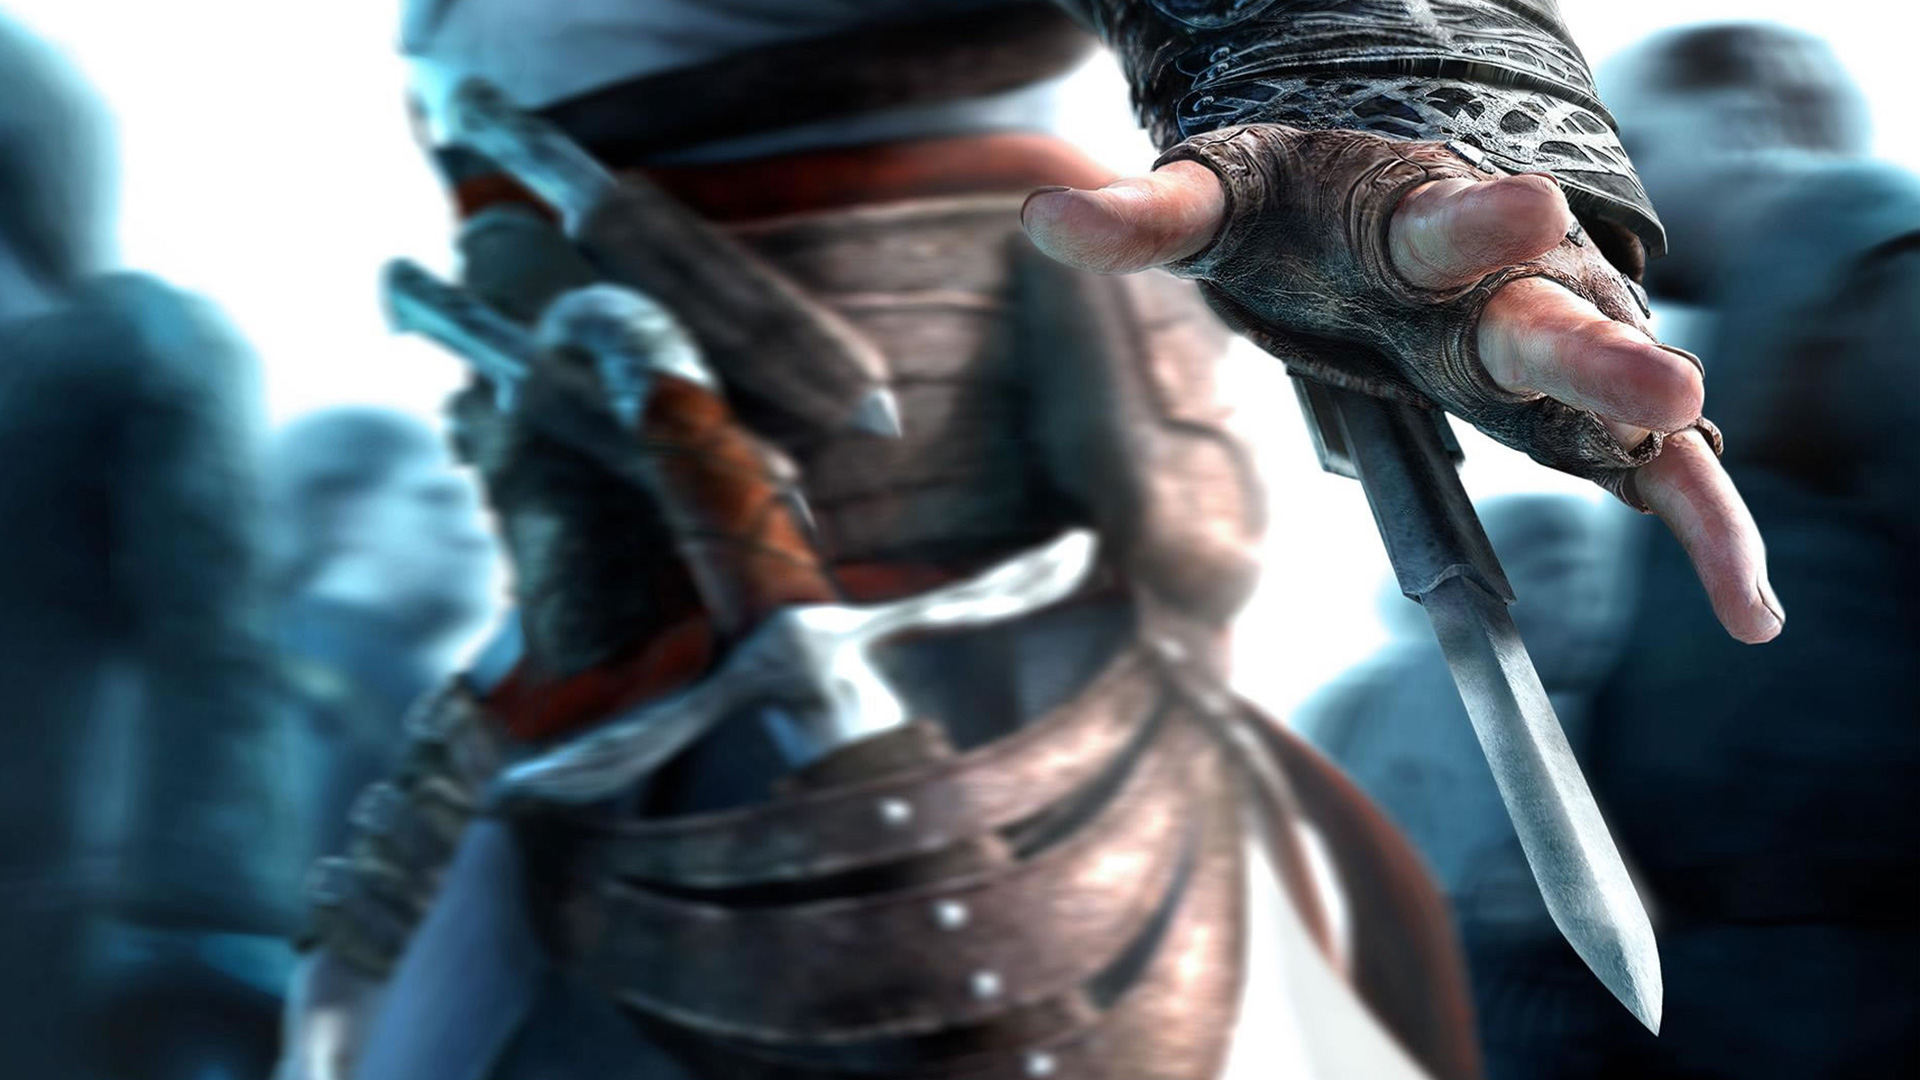 Assassins Creed wallpaper 11